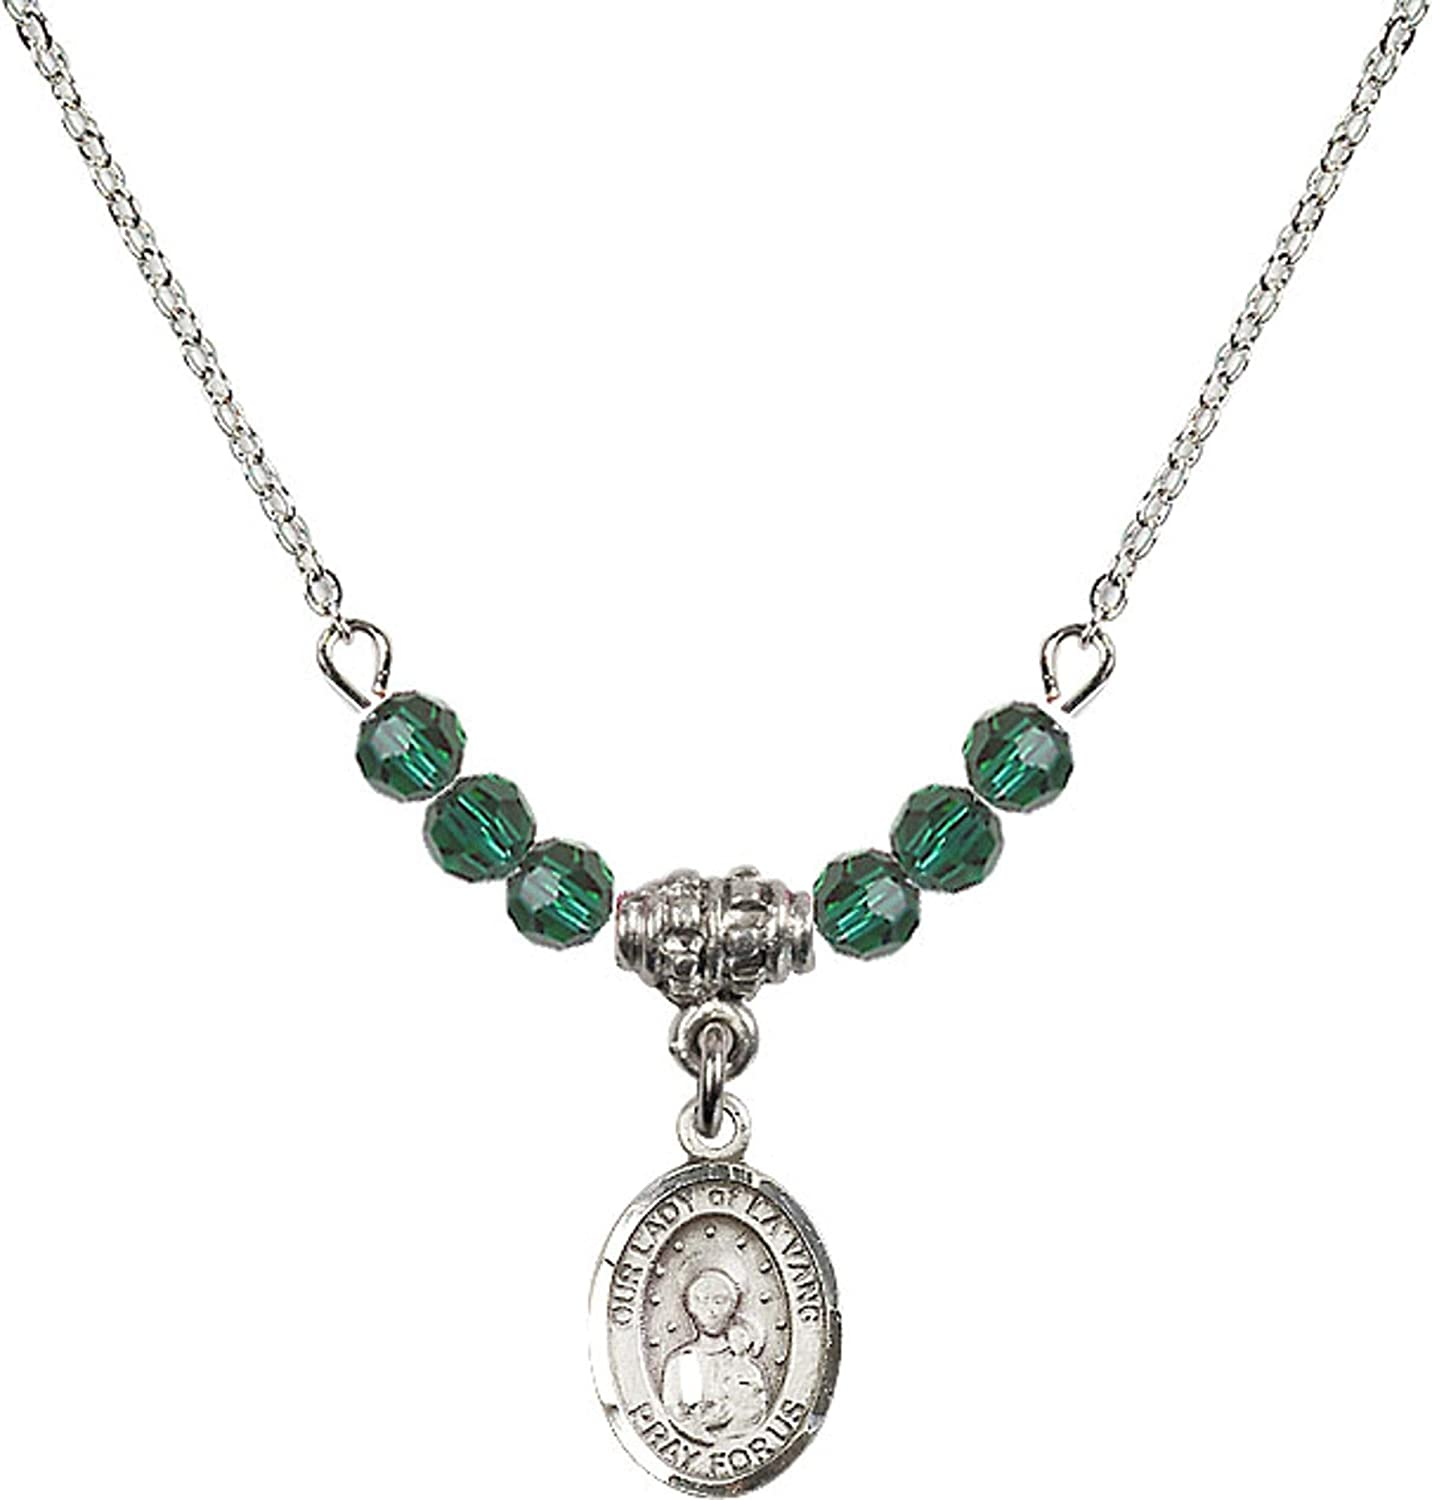 Bonyak Jewelry 18 Inch Rhodium Plated Necklace w// 4mm Green May Birth Month Stone Beads and Our Lady of la Vang Charm